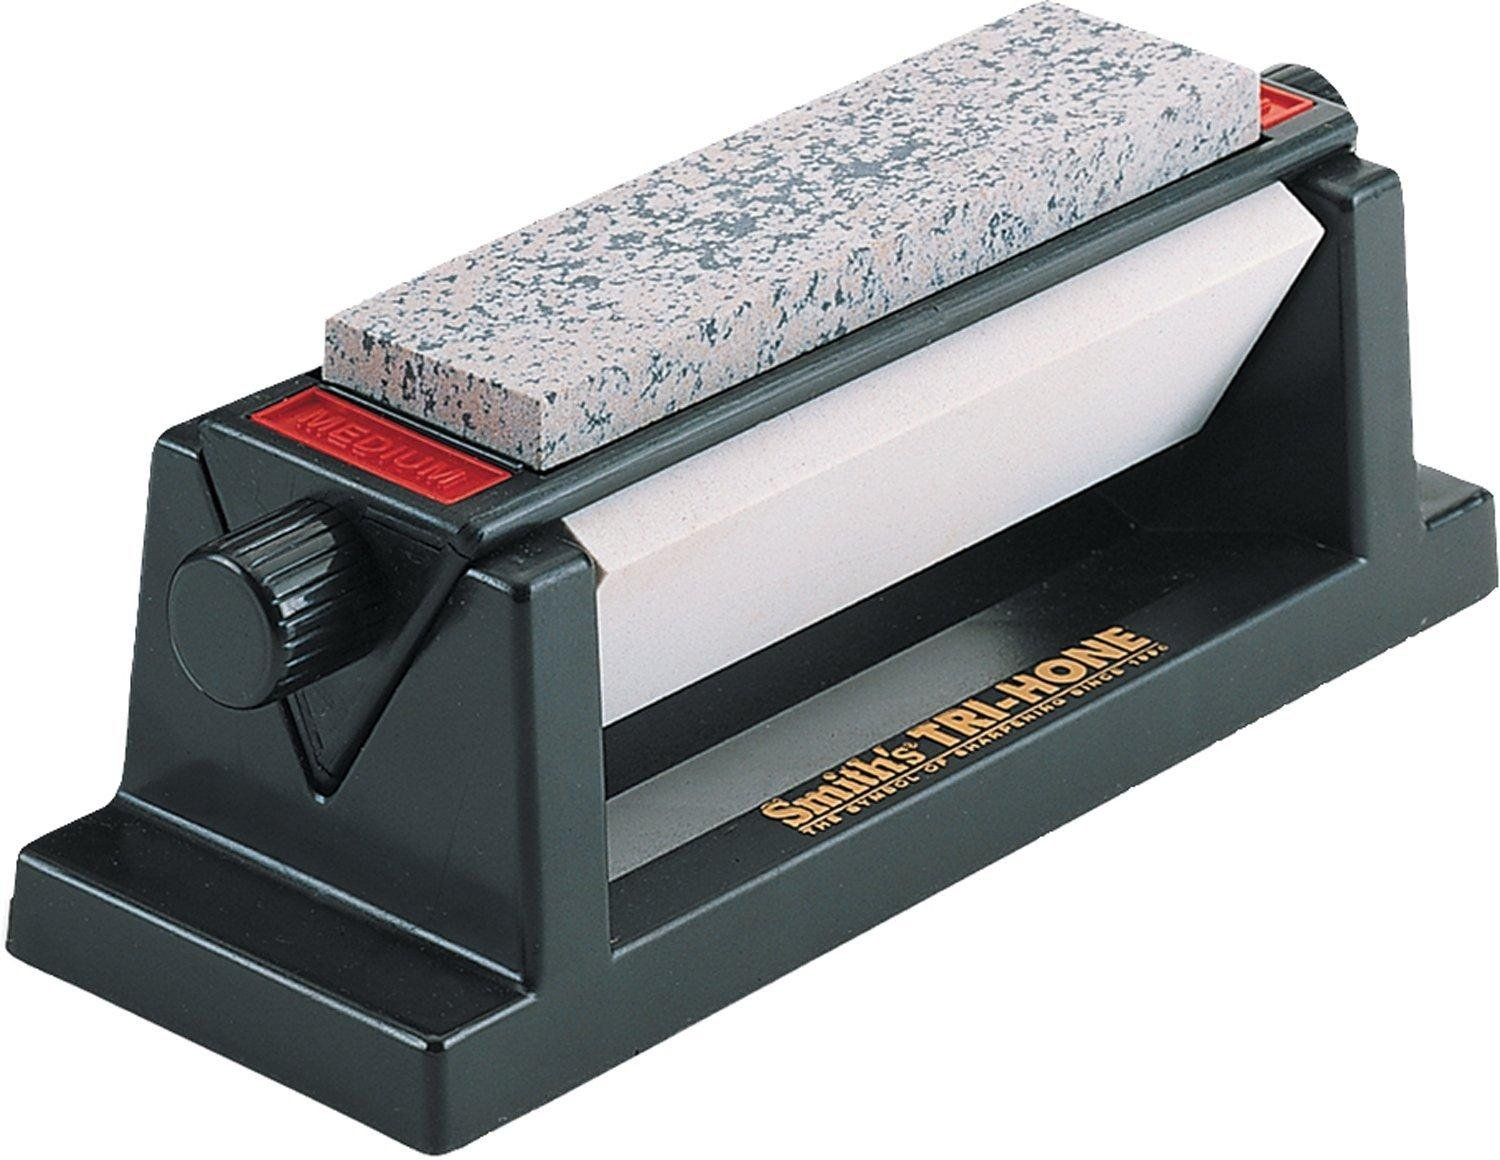 Smith's TRI-6 Arkansas TRI-HONE Sharpening Stones System review